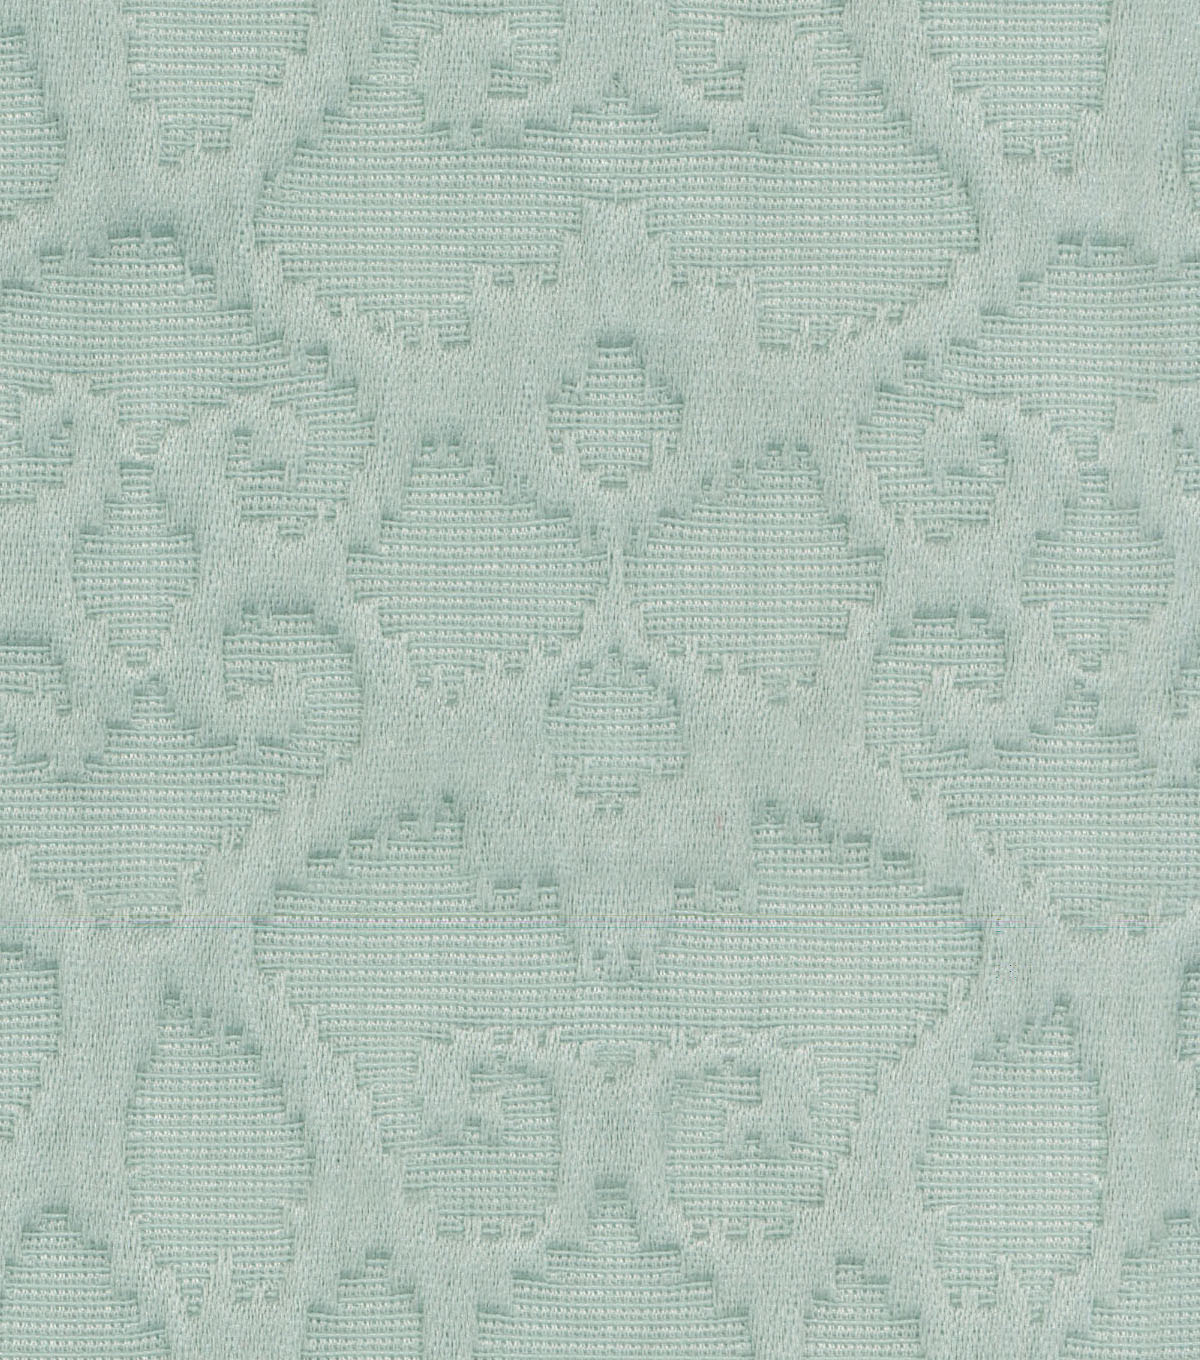 Dena Designs Upholstery Fabric 54\u0022-Loophole Seaglass